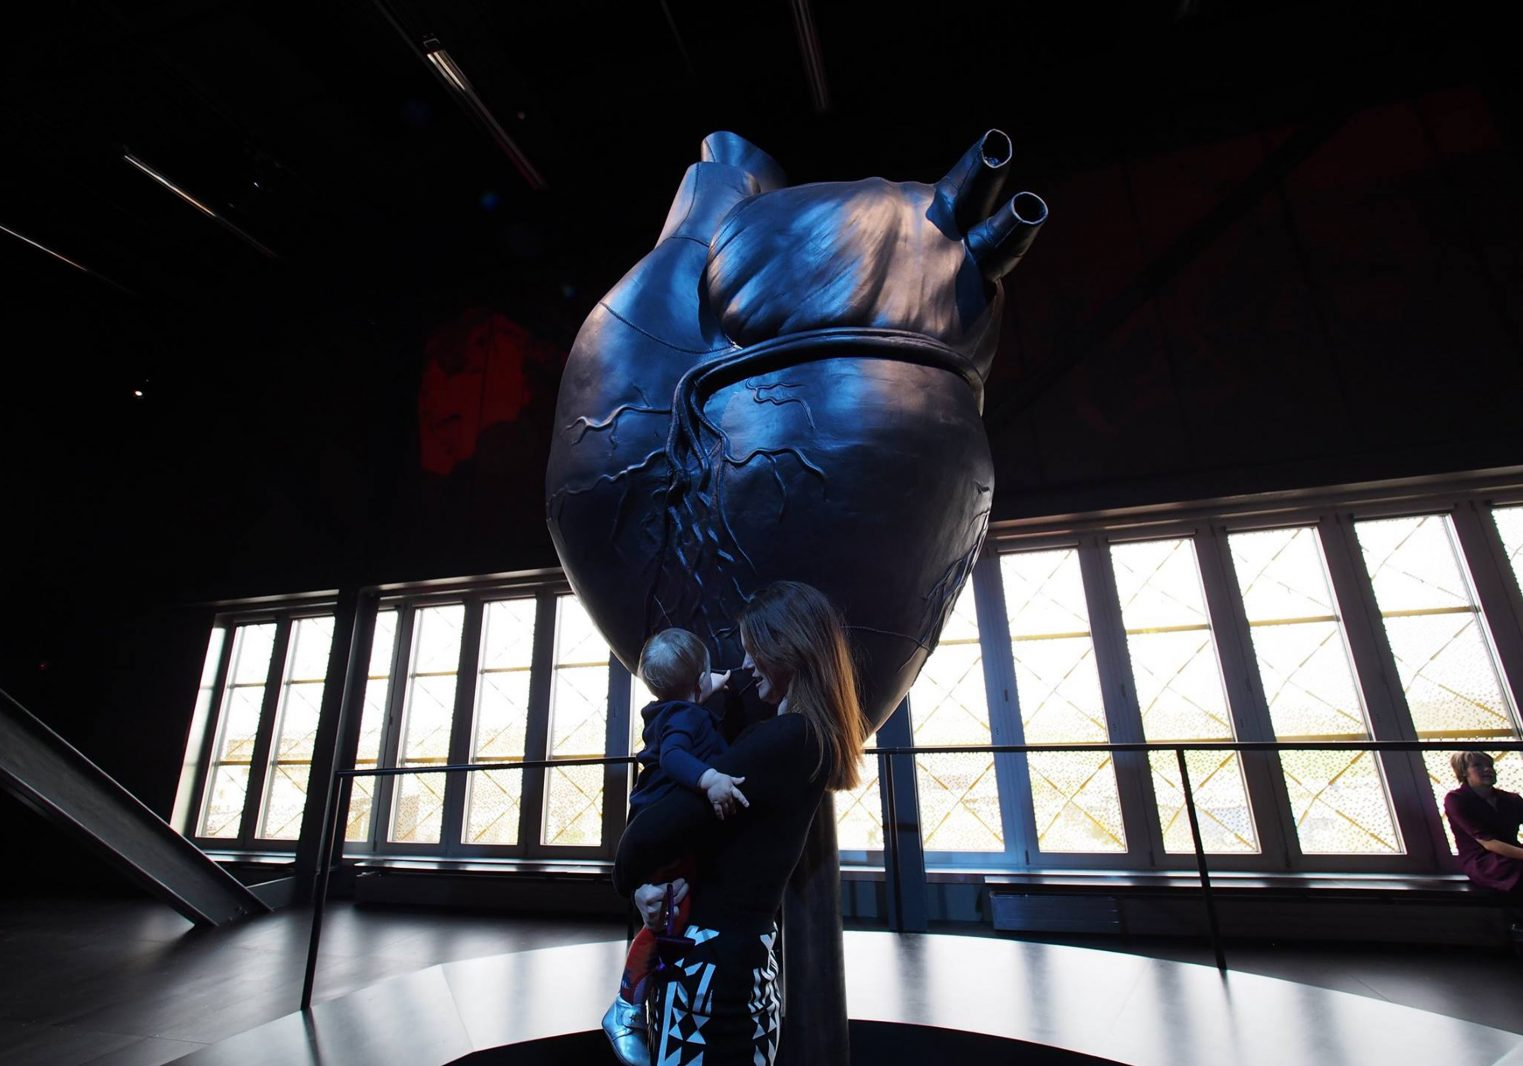 Leather Heart Sculpture for Ragnarock Museum. Concept and art direction by HEAVY™